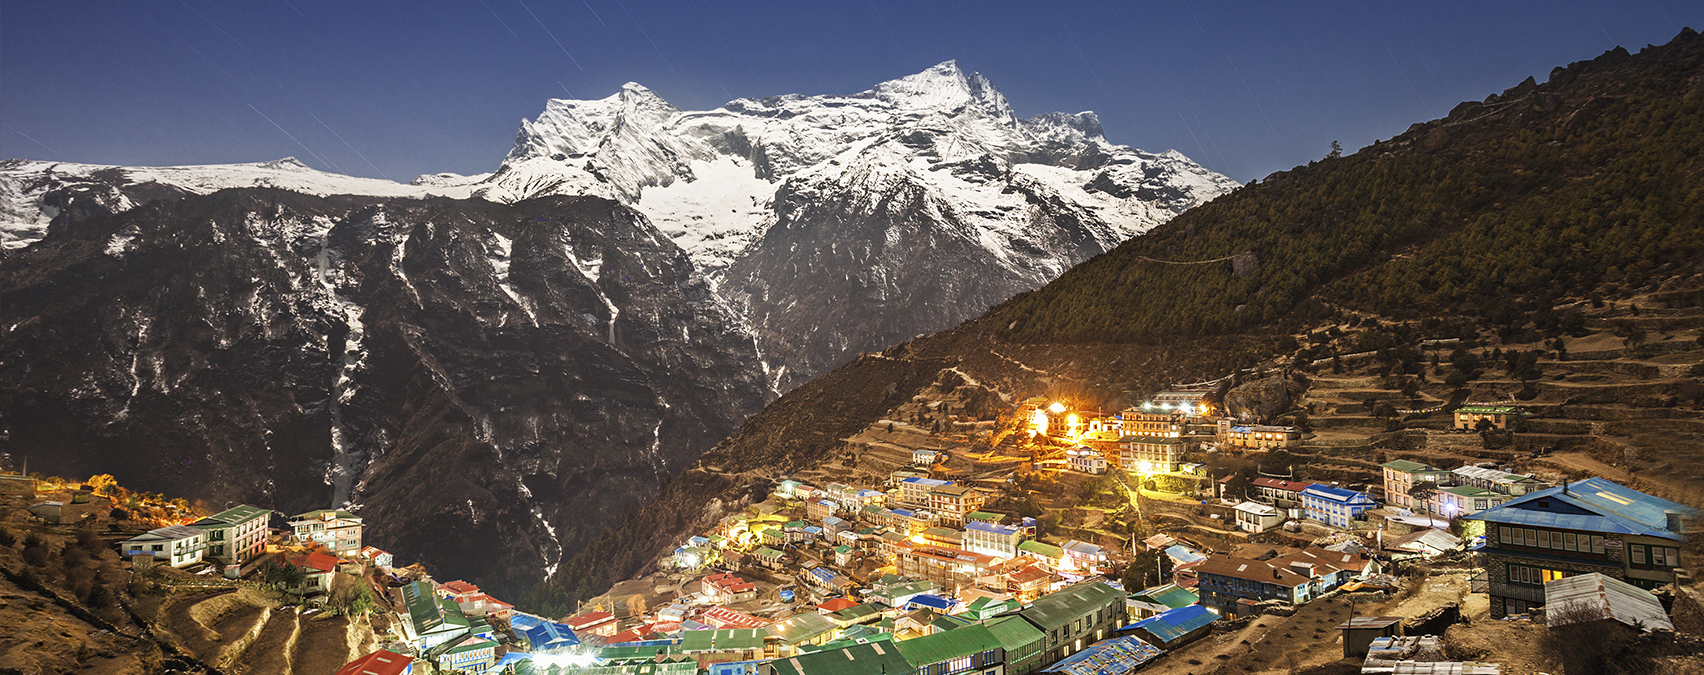 Namche Bazaar, Nepal. Photo: Colourbox